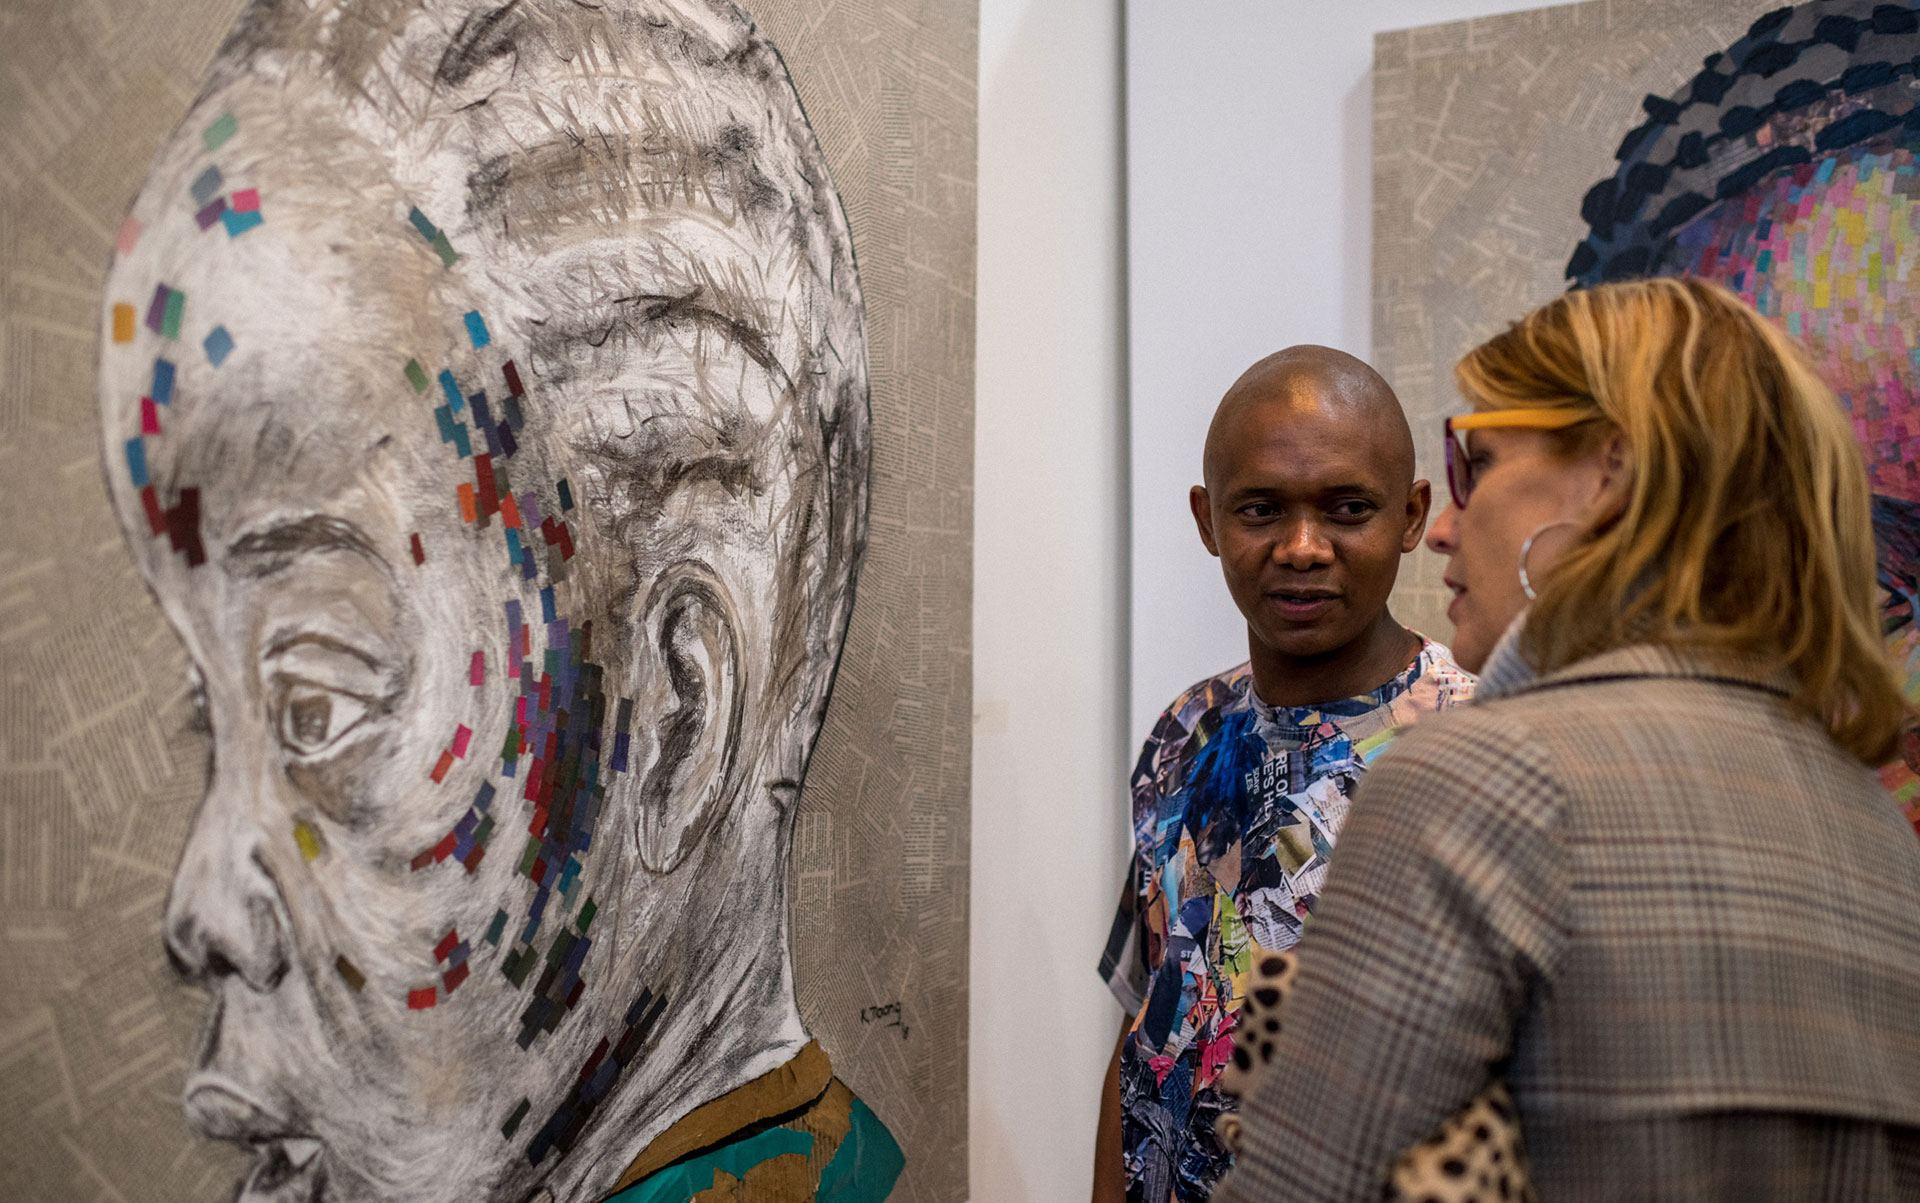 Two people stand in front of a painting and talk to each other.